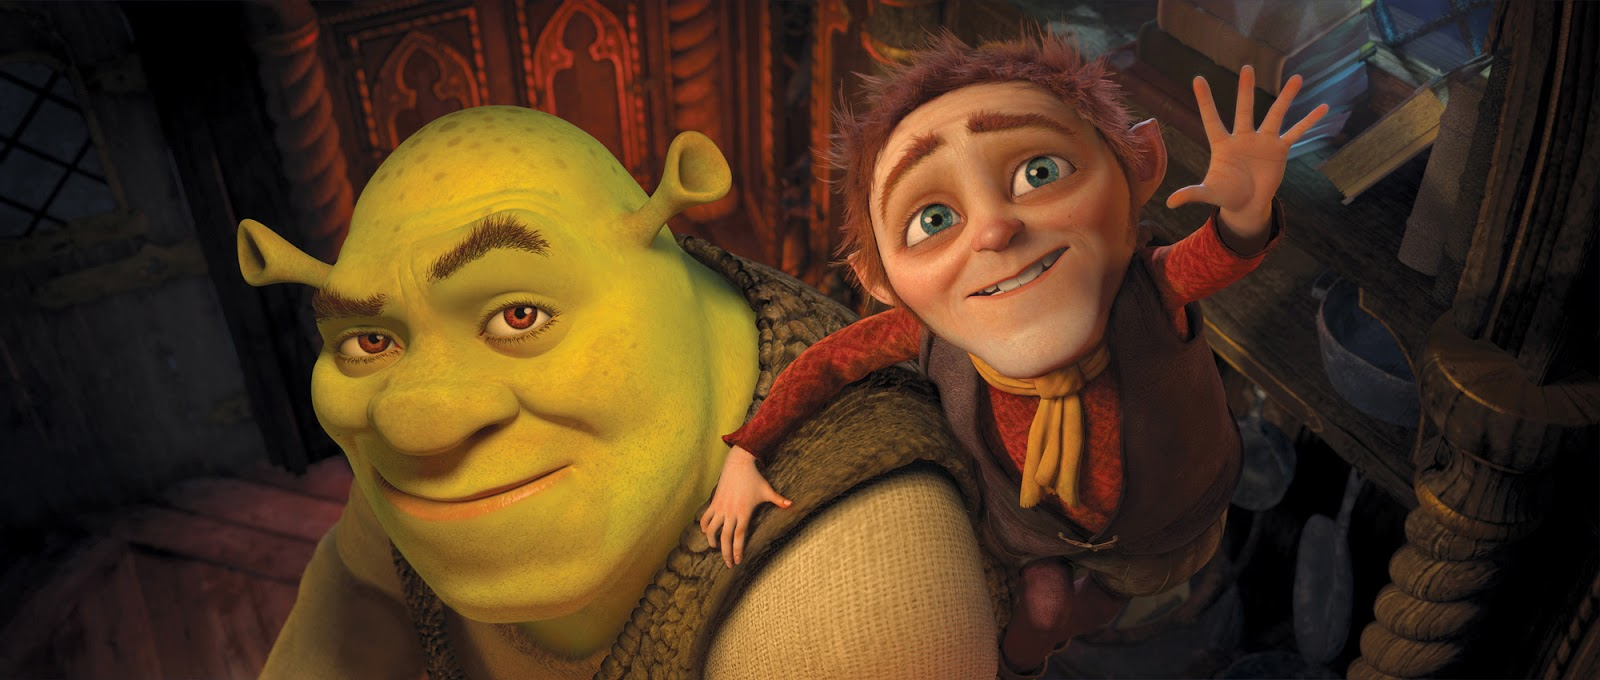 Shrek Rumpelstiltskin Shrek Forever After 2010 animatedfilmreviews.blogspot.com